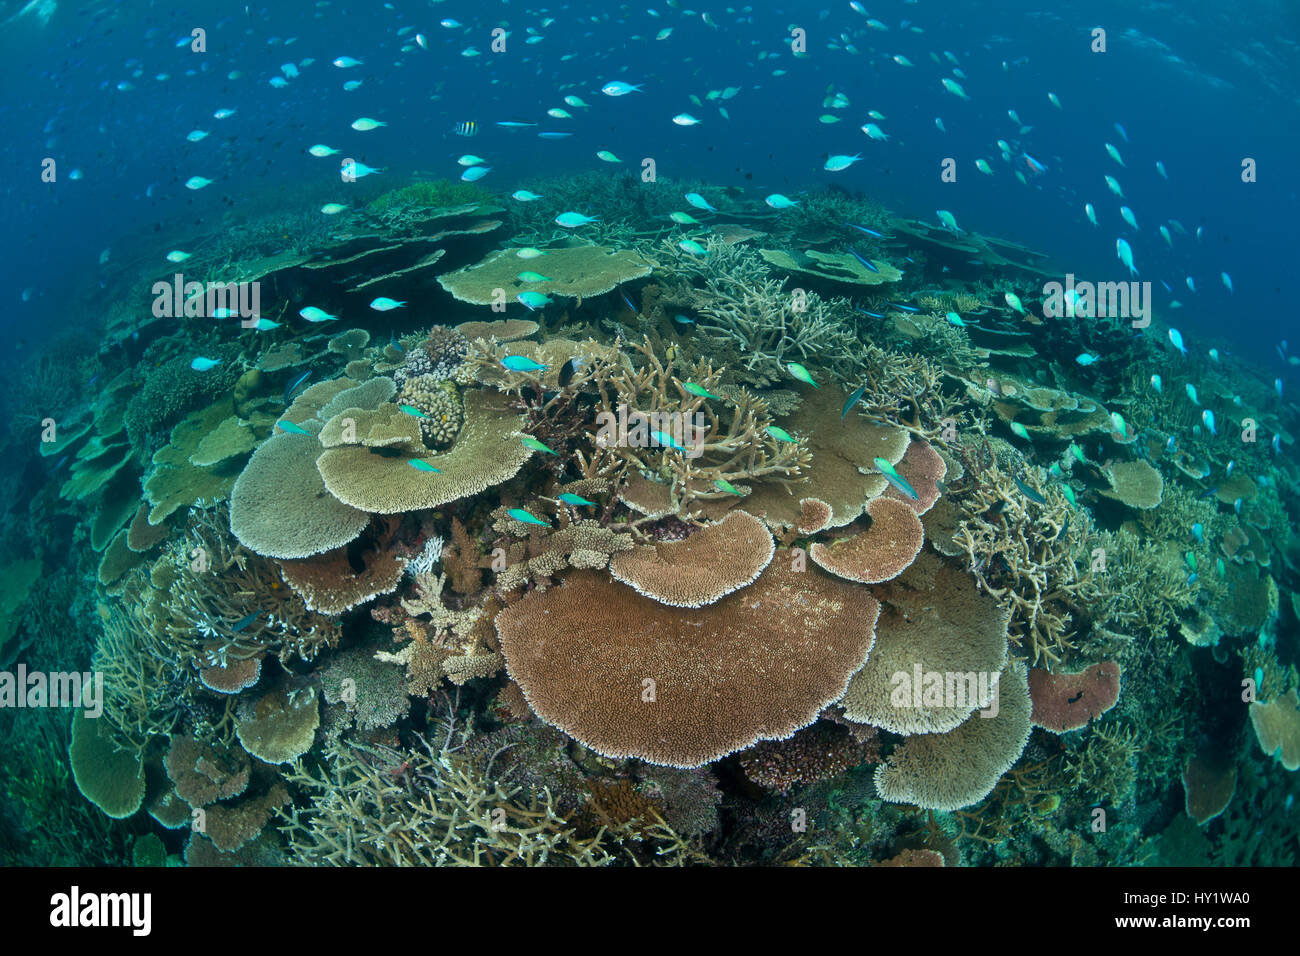 Acropora table and staghorn corals with Bluegreen chromis (Chromis viridis) shoal. Great Barrier Reef, Queensland, - Stock Image